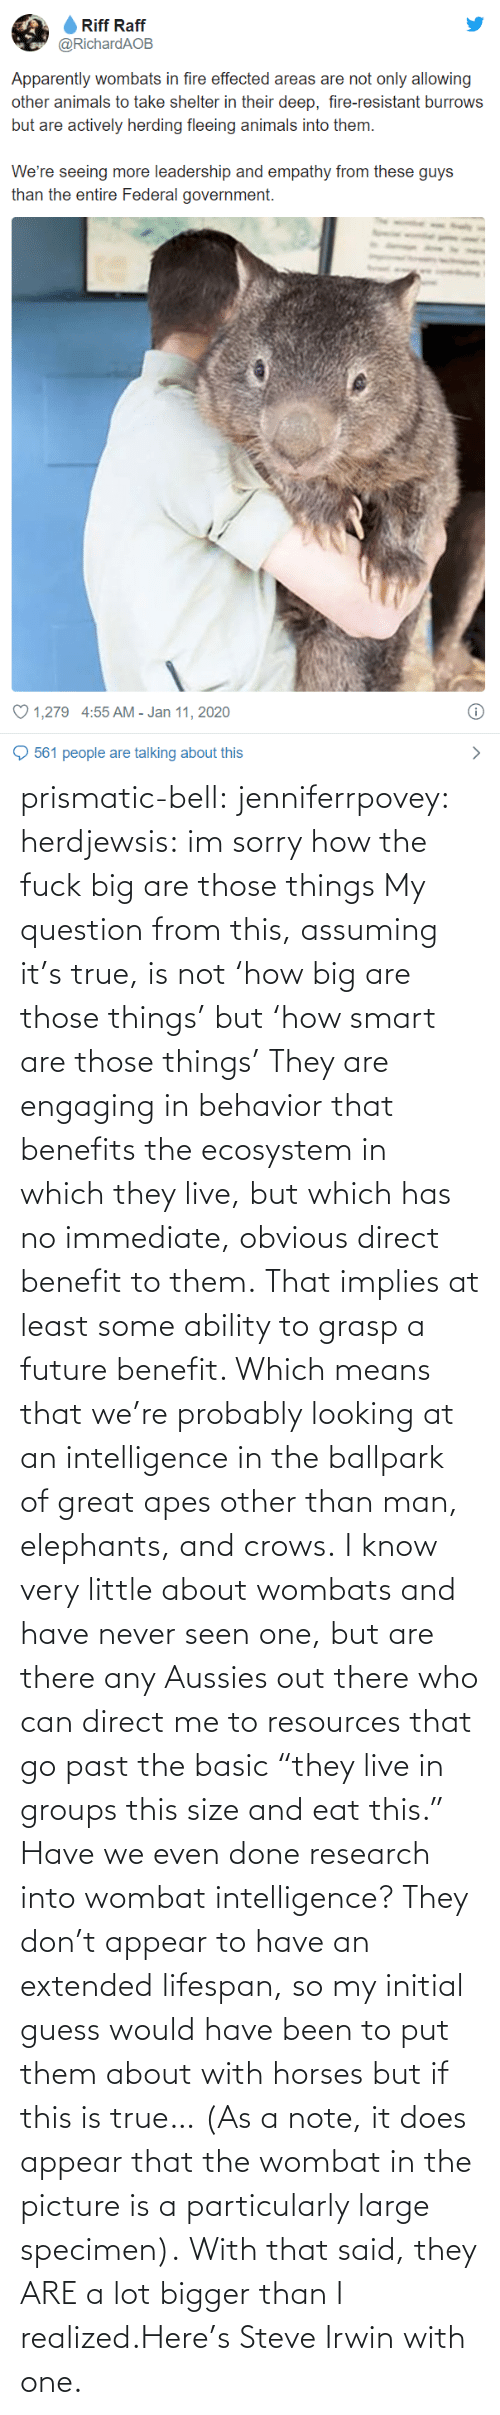 "Benefits: prismatic-bell:  jenniferrpovey: herdjewsis: im sorry how the fuck big are those things My question from this, assuming it's true, is not 'how big are those things' but 'how smart are those things' They are engaging in behavior that benefits the ecosystem in which they live, but which has no immediate, obvious direct benefit to them. That implies at least some ability to grasp a future benefit. Which means that we're probably looking at an intelligence in the ballpark of great apes other than man, elephants, and crows. I know very little about wombats and have never seen one, but are there any Aussies out there who can direct me to resources that go past the basic ""they live in groups this size and eat this."" Have we even done research into wombat intelligence? They don't appear to have an extended lifespan, so my initial guess would have been to put them about with horses but if this is true… (As a note, it does appear that the wombat in the picture is a particularly large specimen).  With that said, they ARE a lot bigger than I realized.Here's Steve Irwin with one."